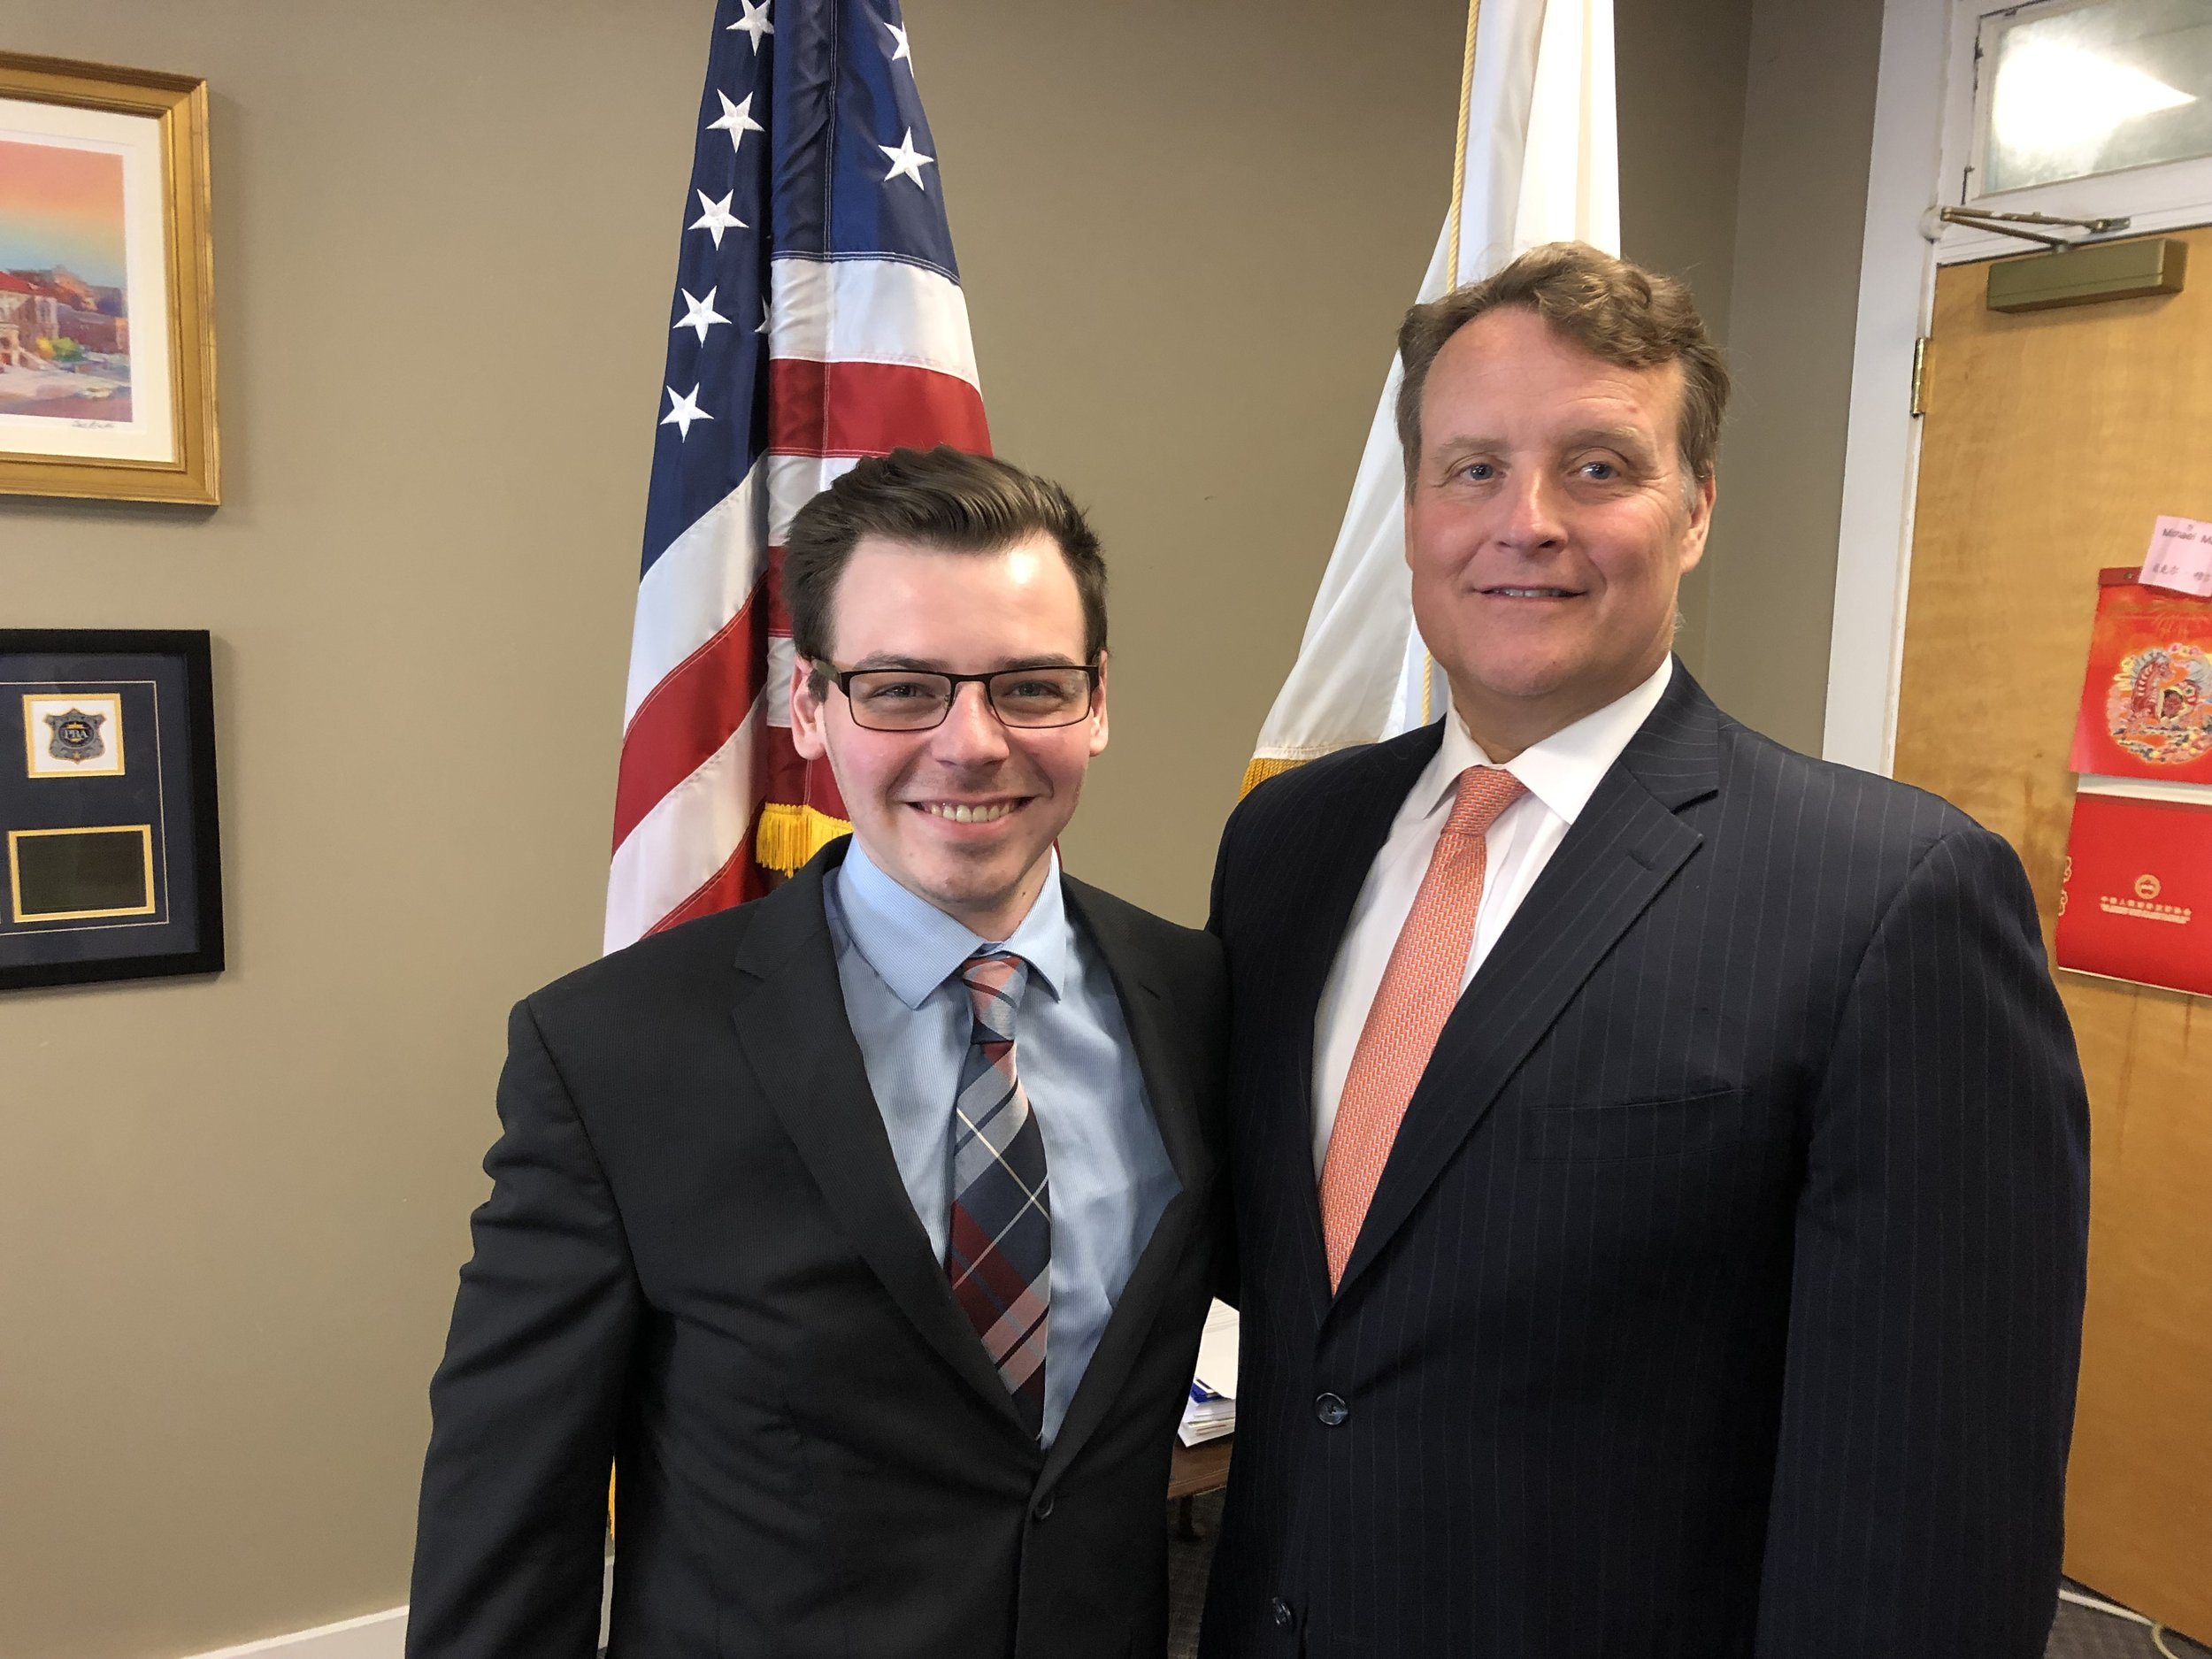 Senator Michael O. Moore with intern Christopher Quigley, a Millbury native.